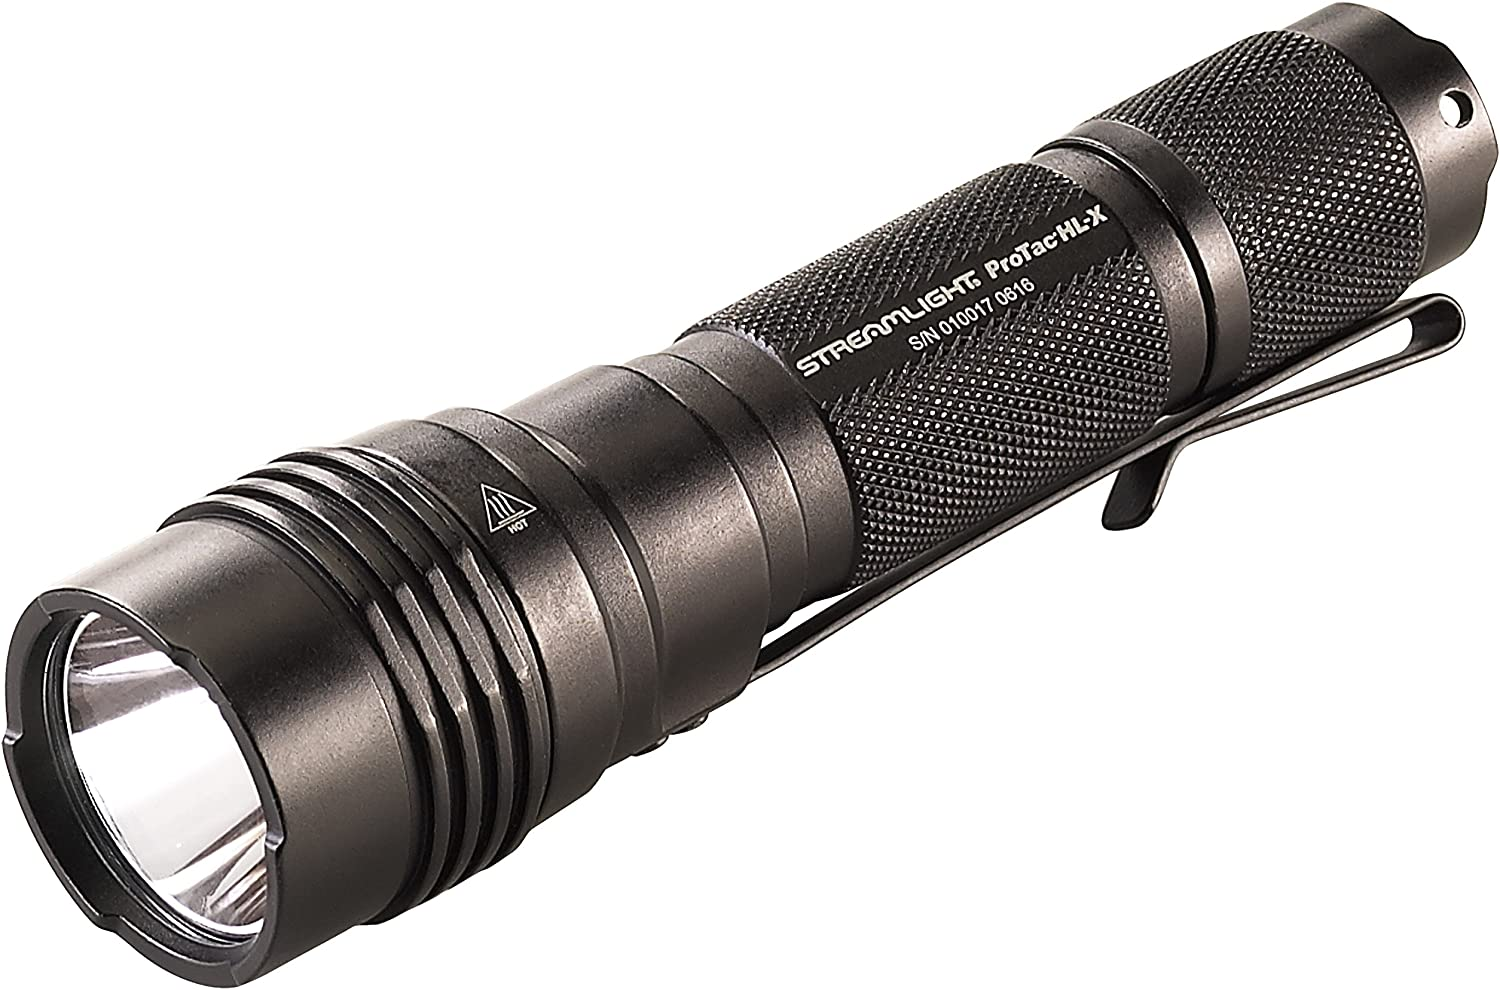 SureFire Defender Series LED Flashlights